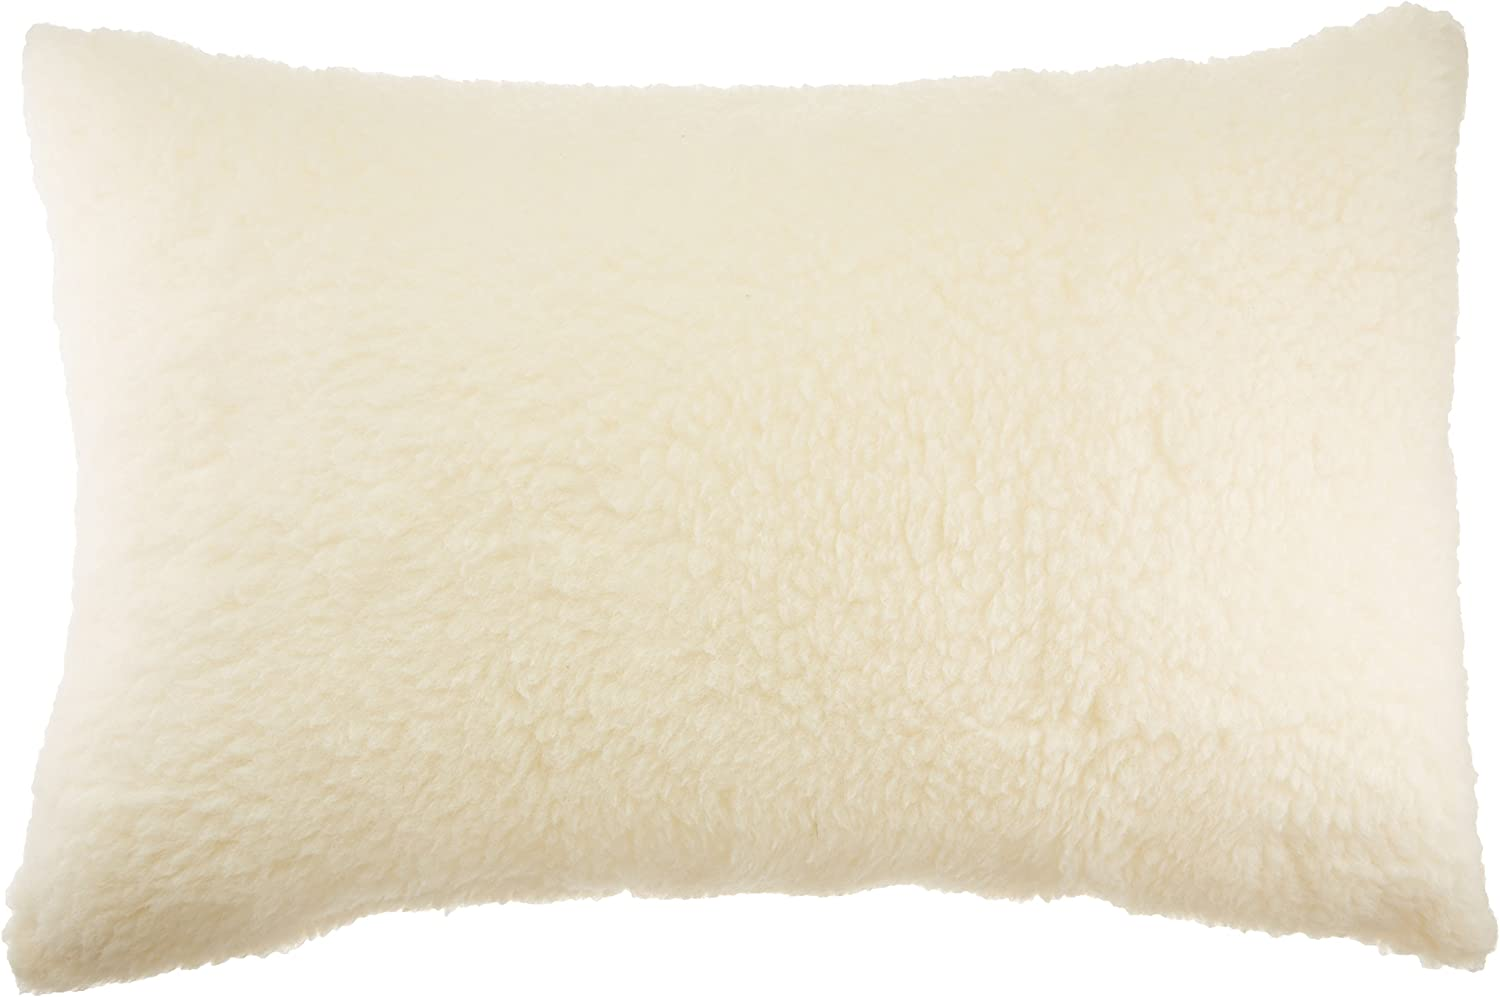 Century Home Signature Collection Woolmark Certified Pure Wool Fleece Pillow Protector, Queen